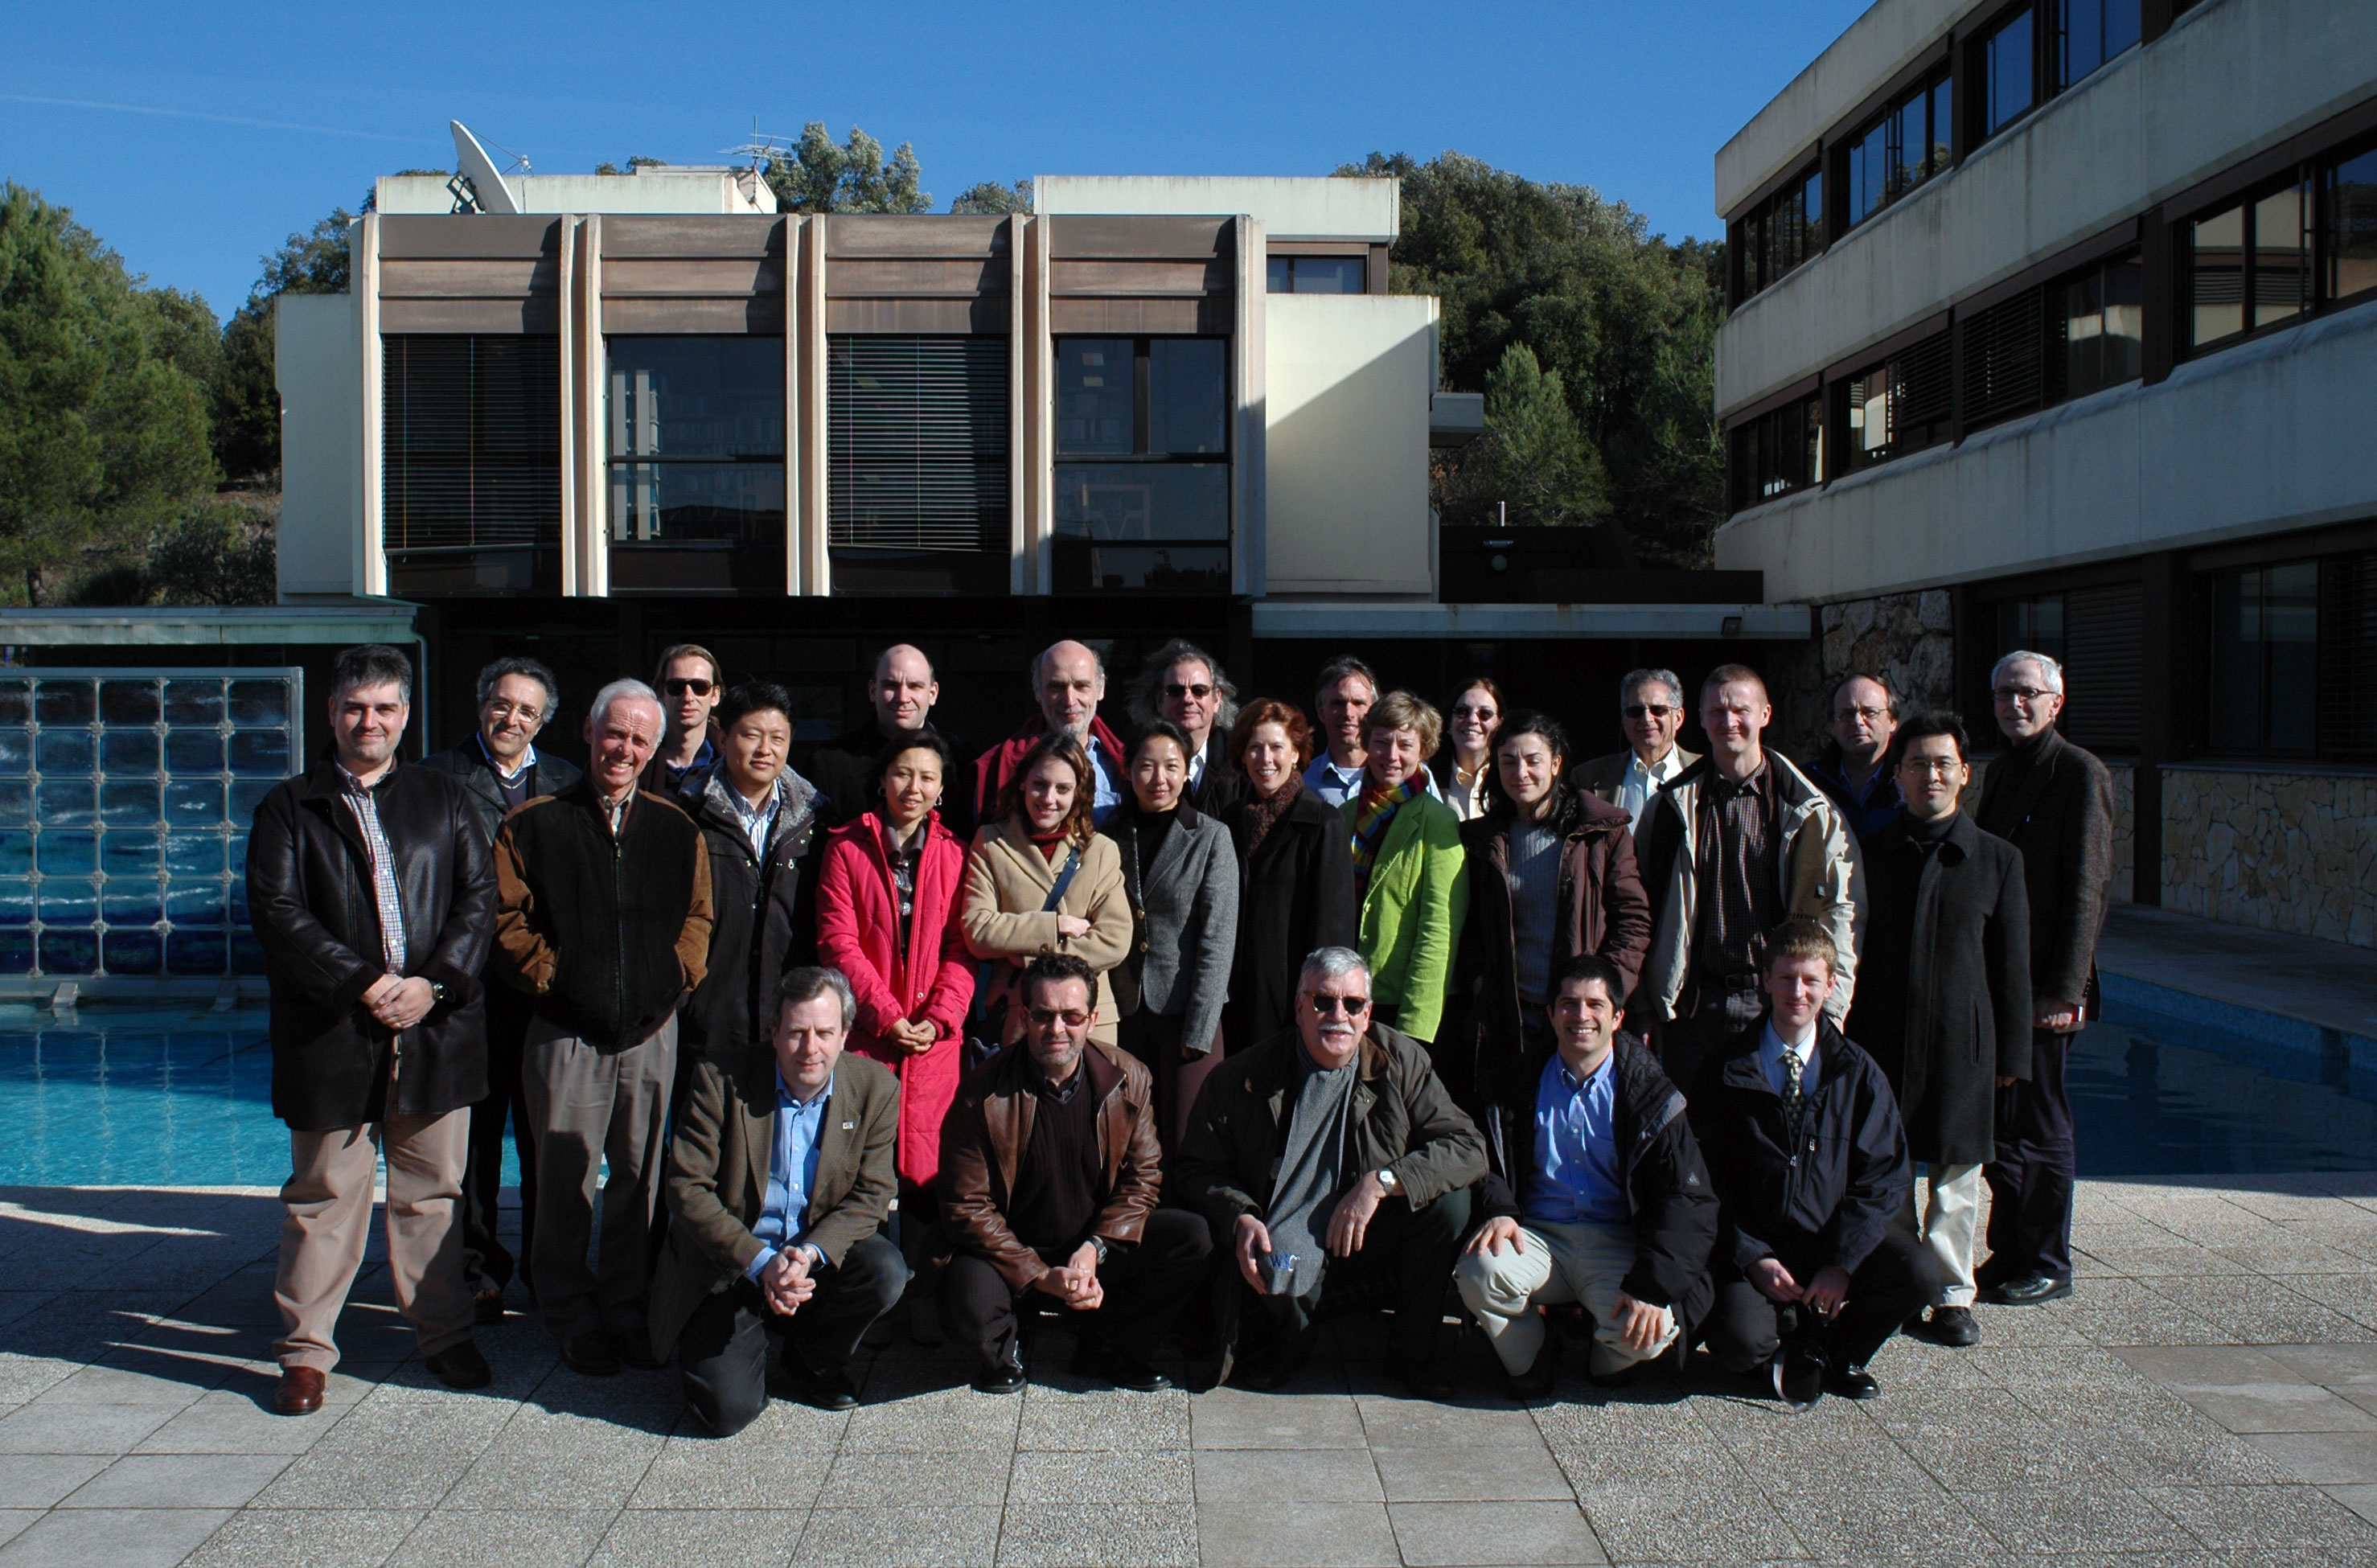 Group photo of meeting participants